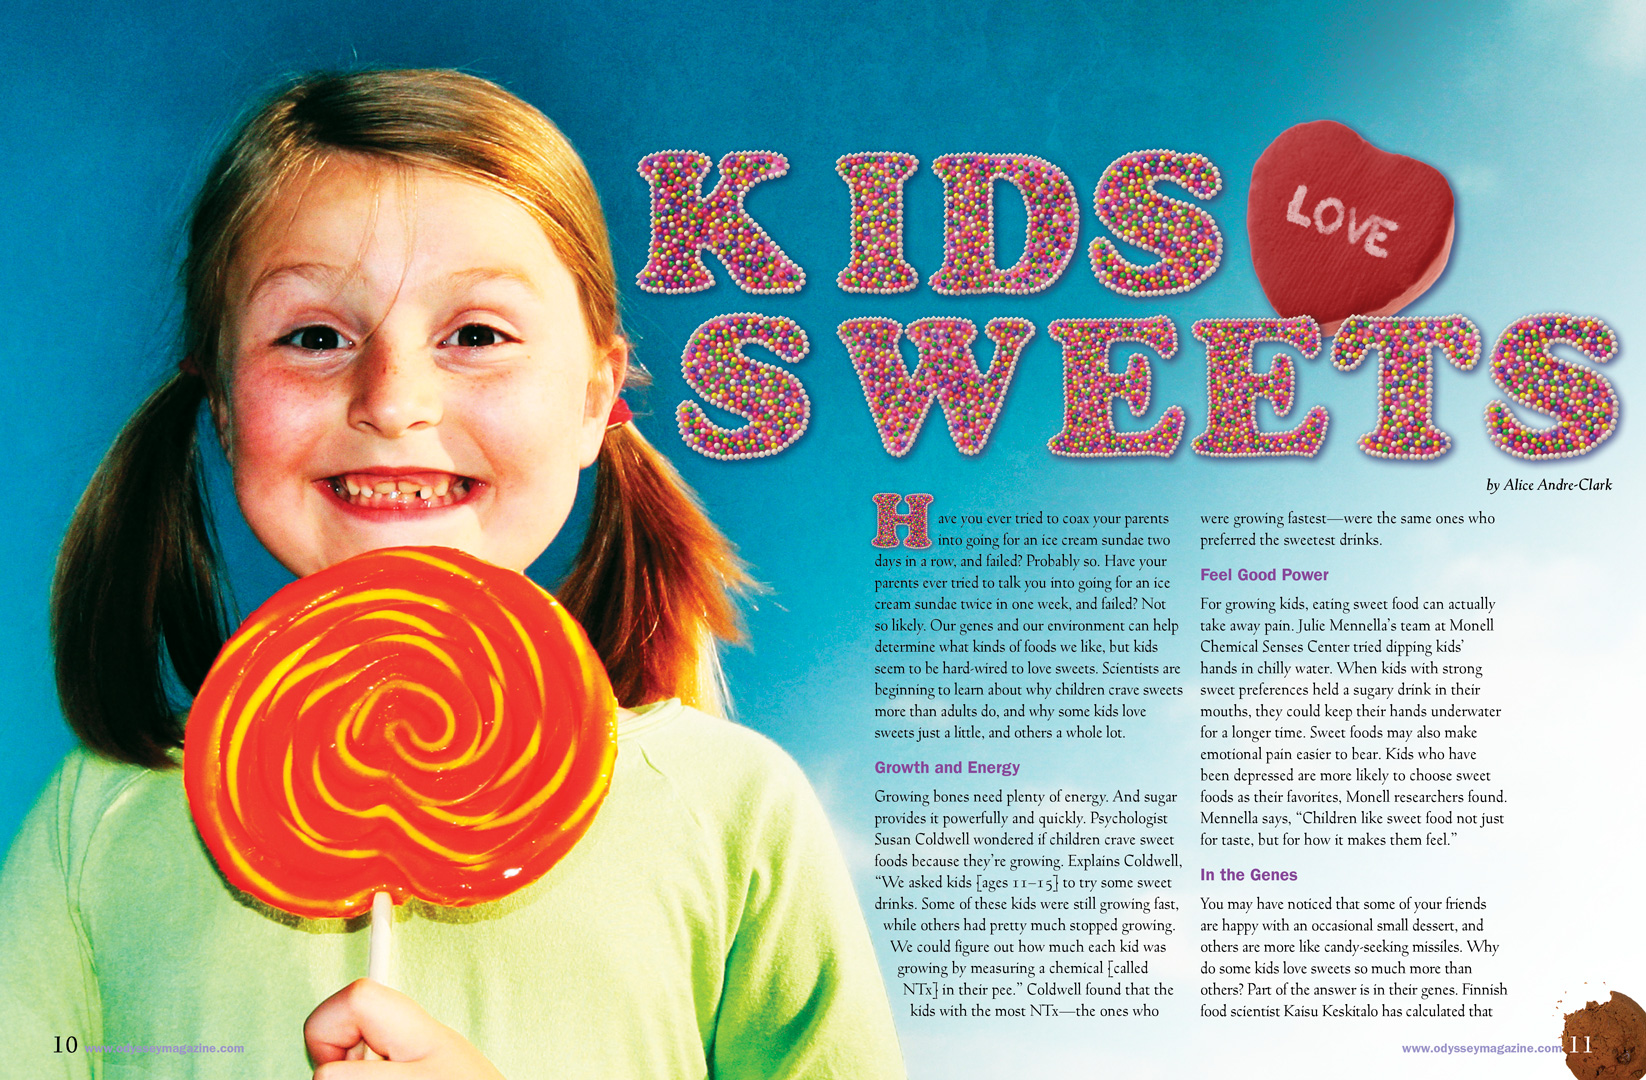 Kids Love Sweets